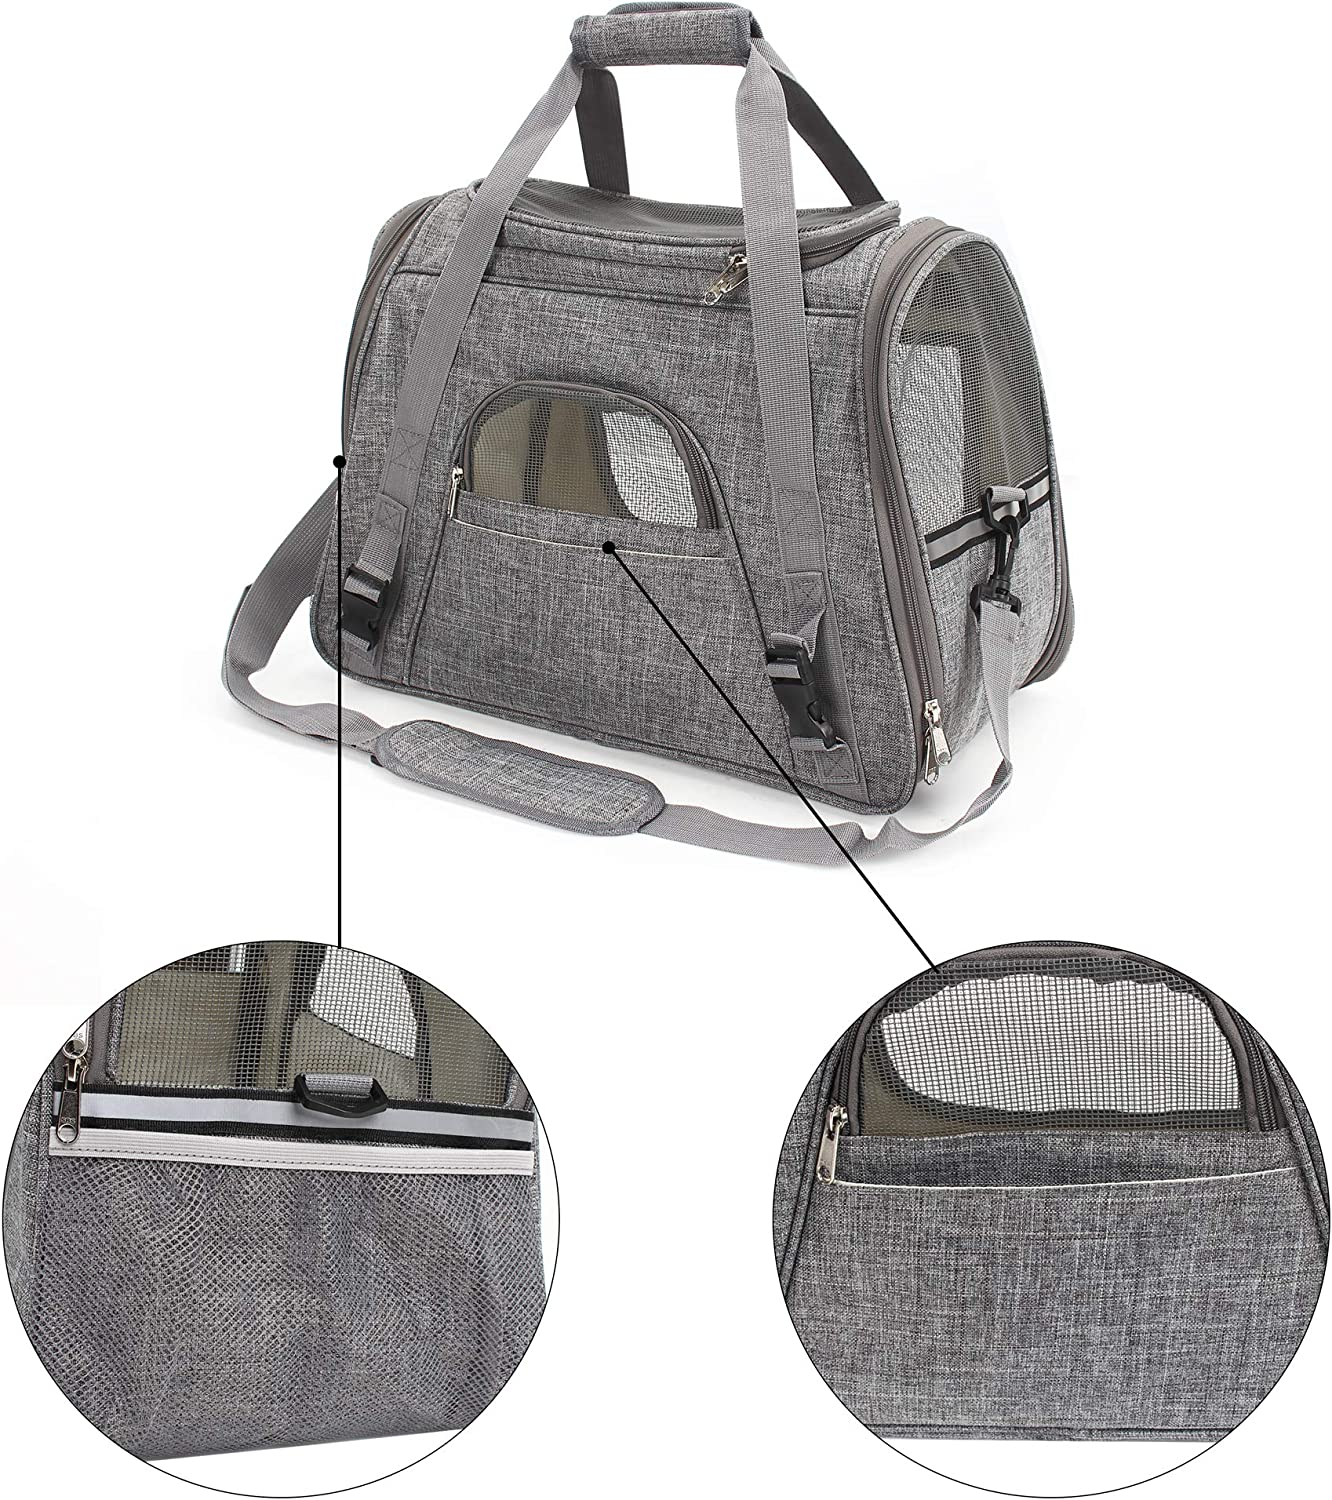 DAWOO Cat Carrier Airline-Approved Travel Pet Carrier,Dog Carrier,Suitable for Small and Medium-Sized Cats and Dogs 45 * 23 * 35cm, Light Gray